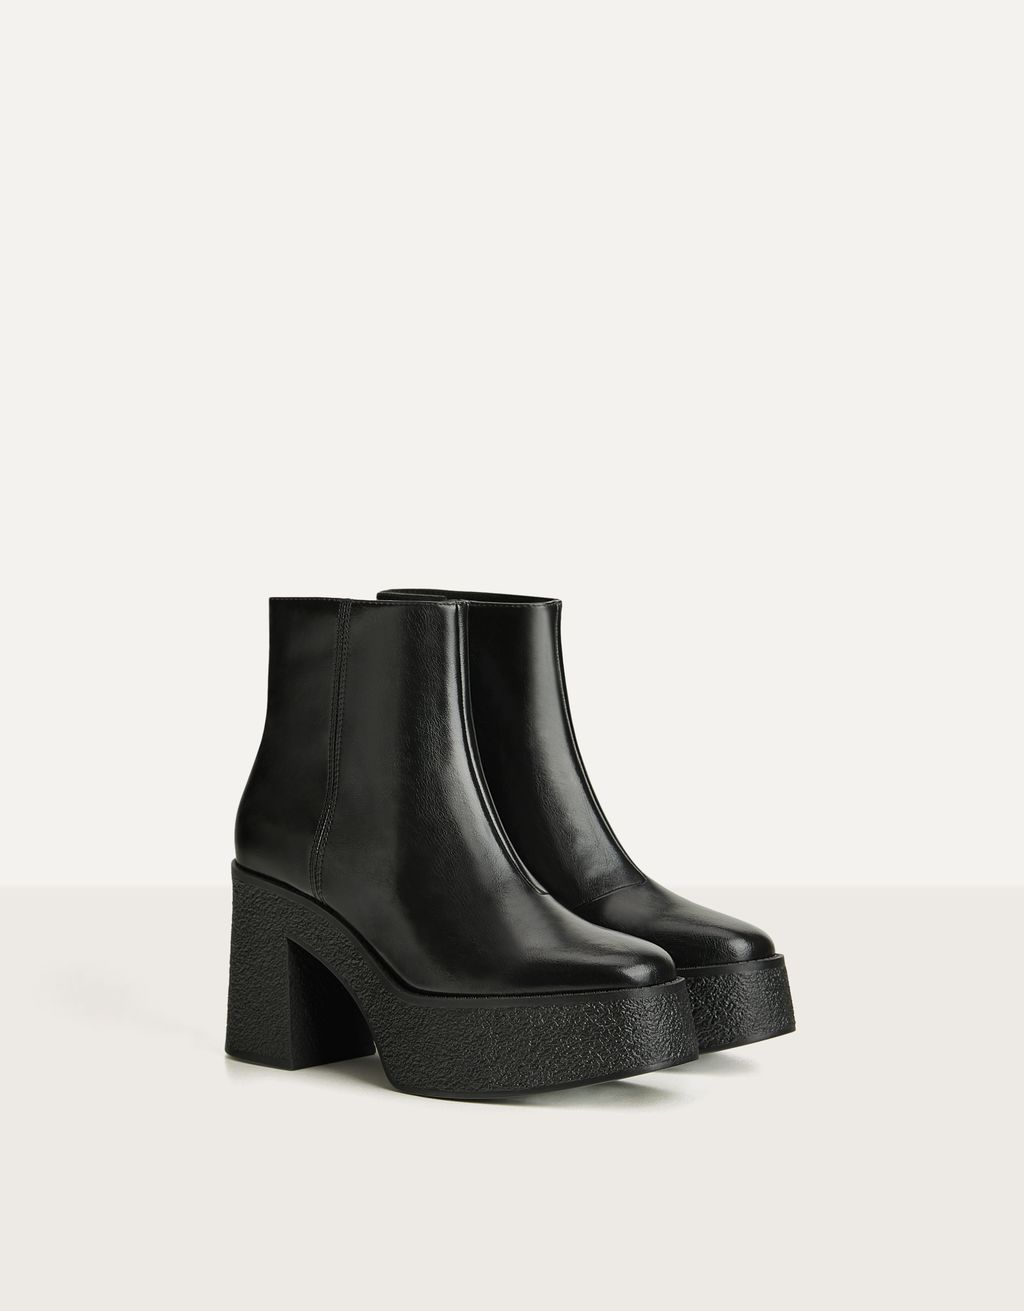 Platform high-heel ankle boots